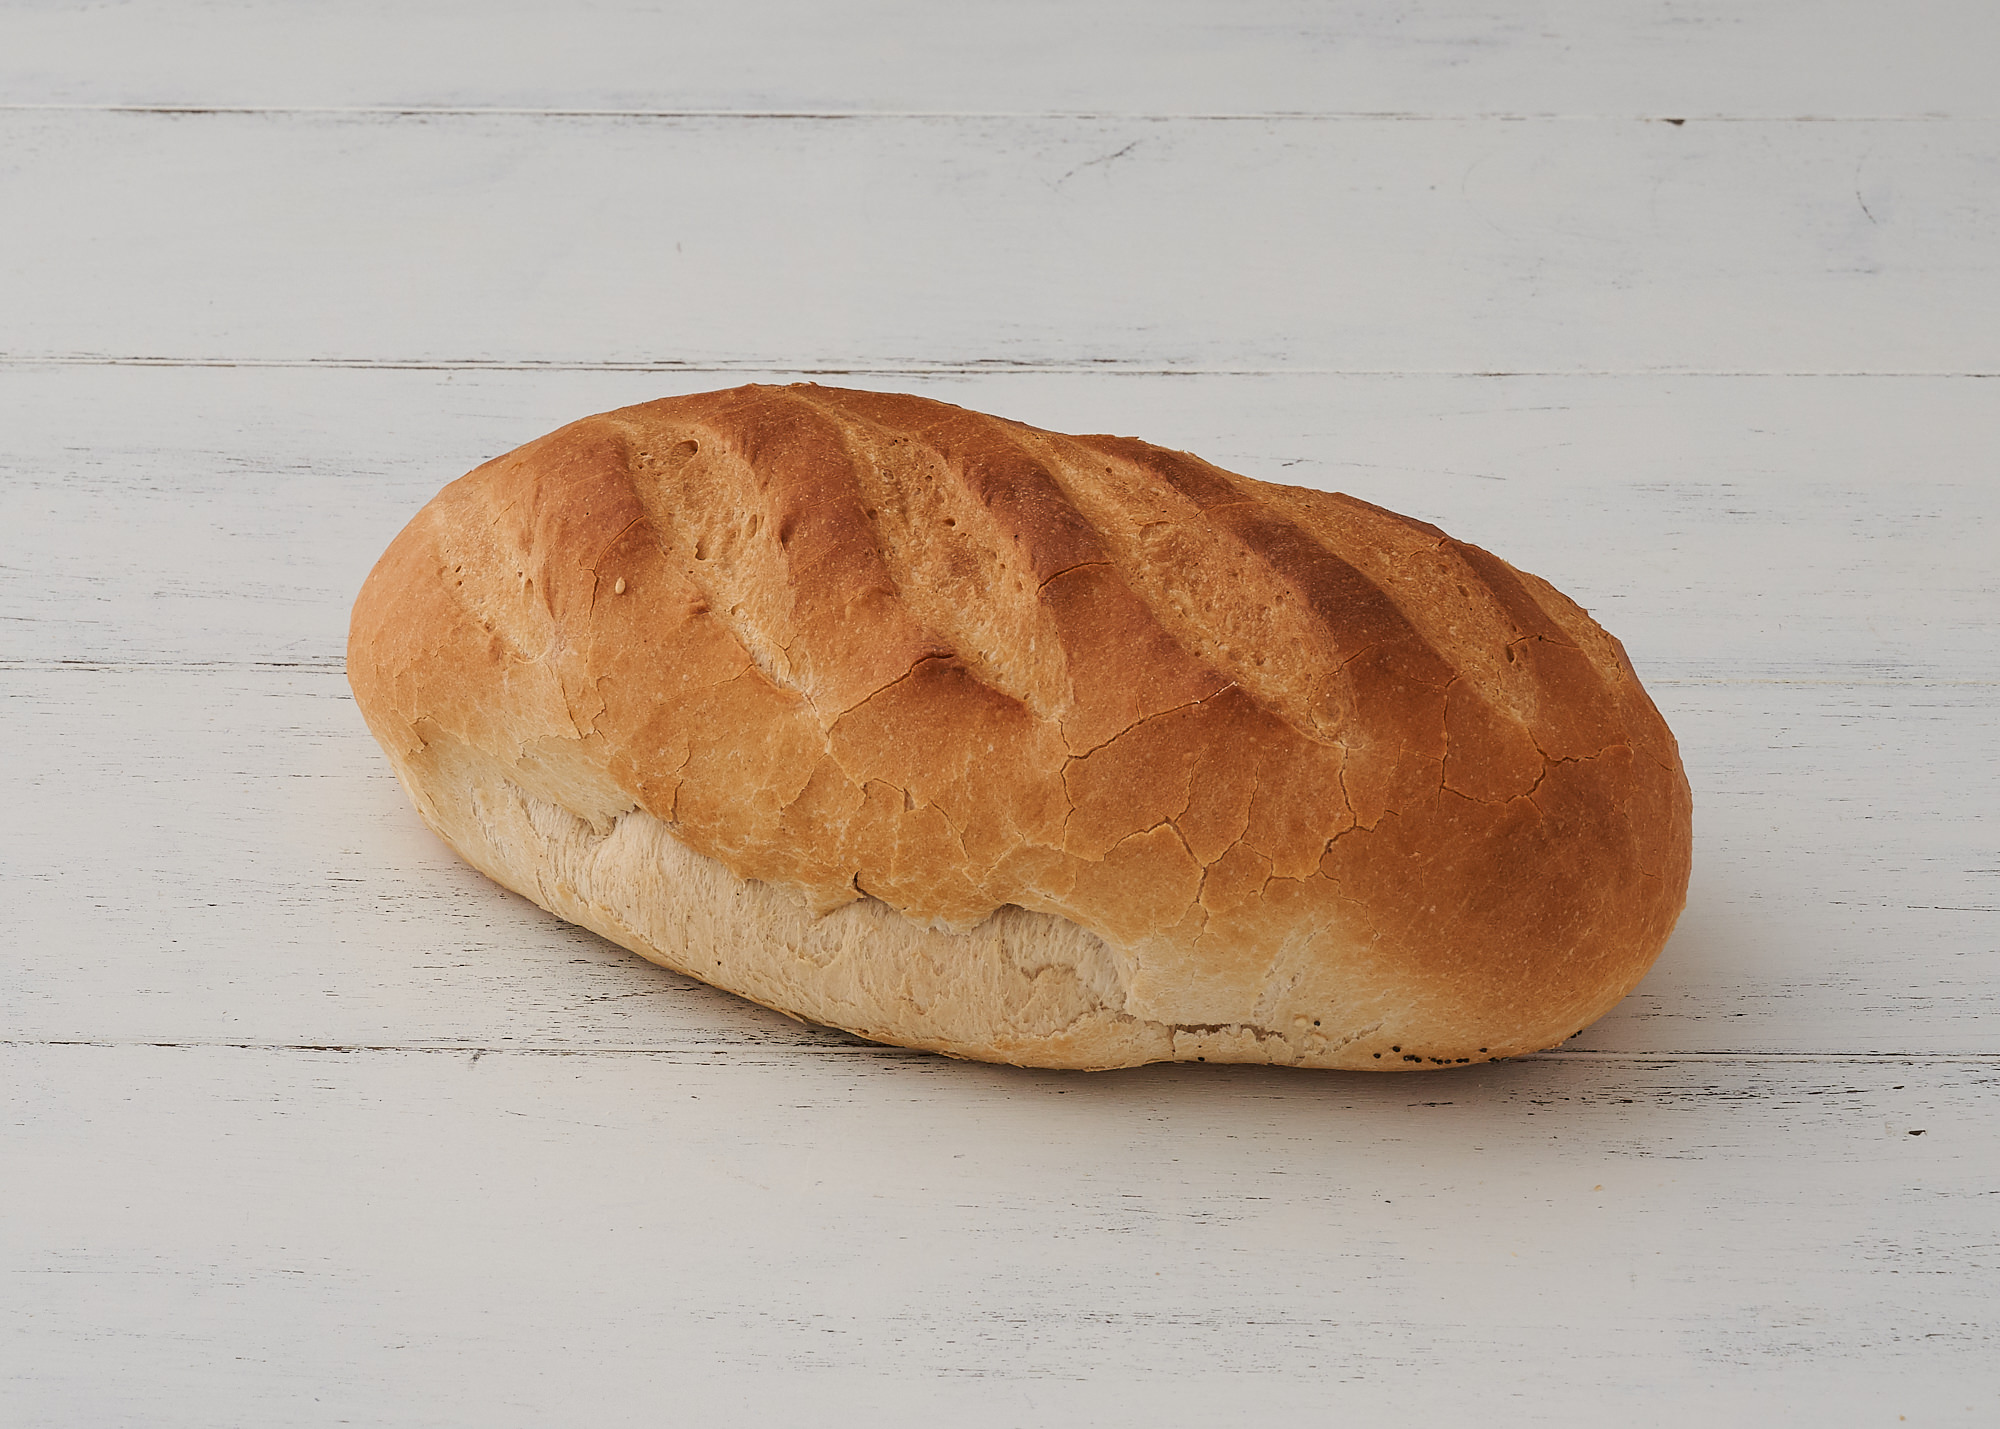 White Bloomer - A classic traditional British Loaf developed during the war. It has 7 cuts allowing for a slice each day